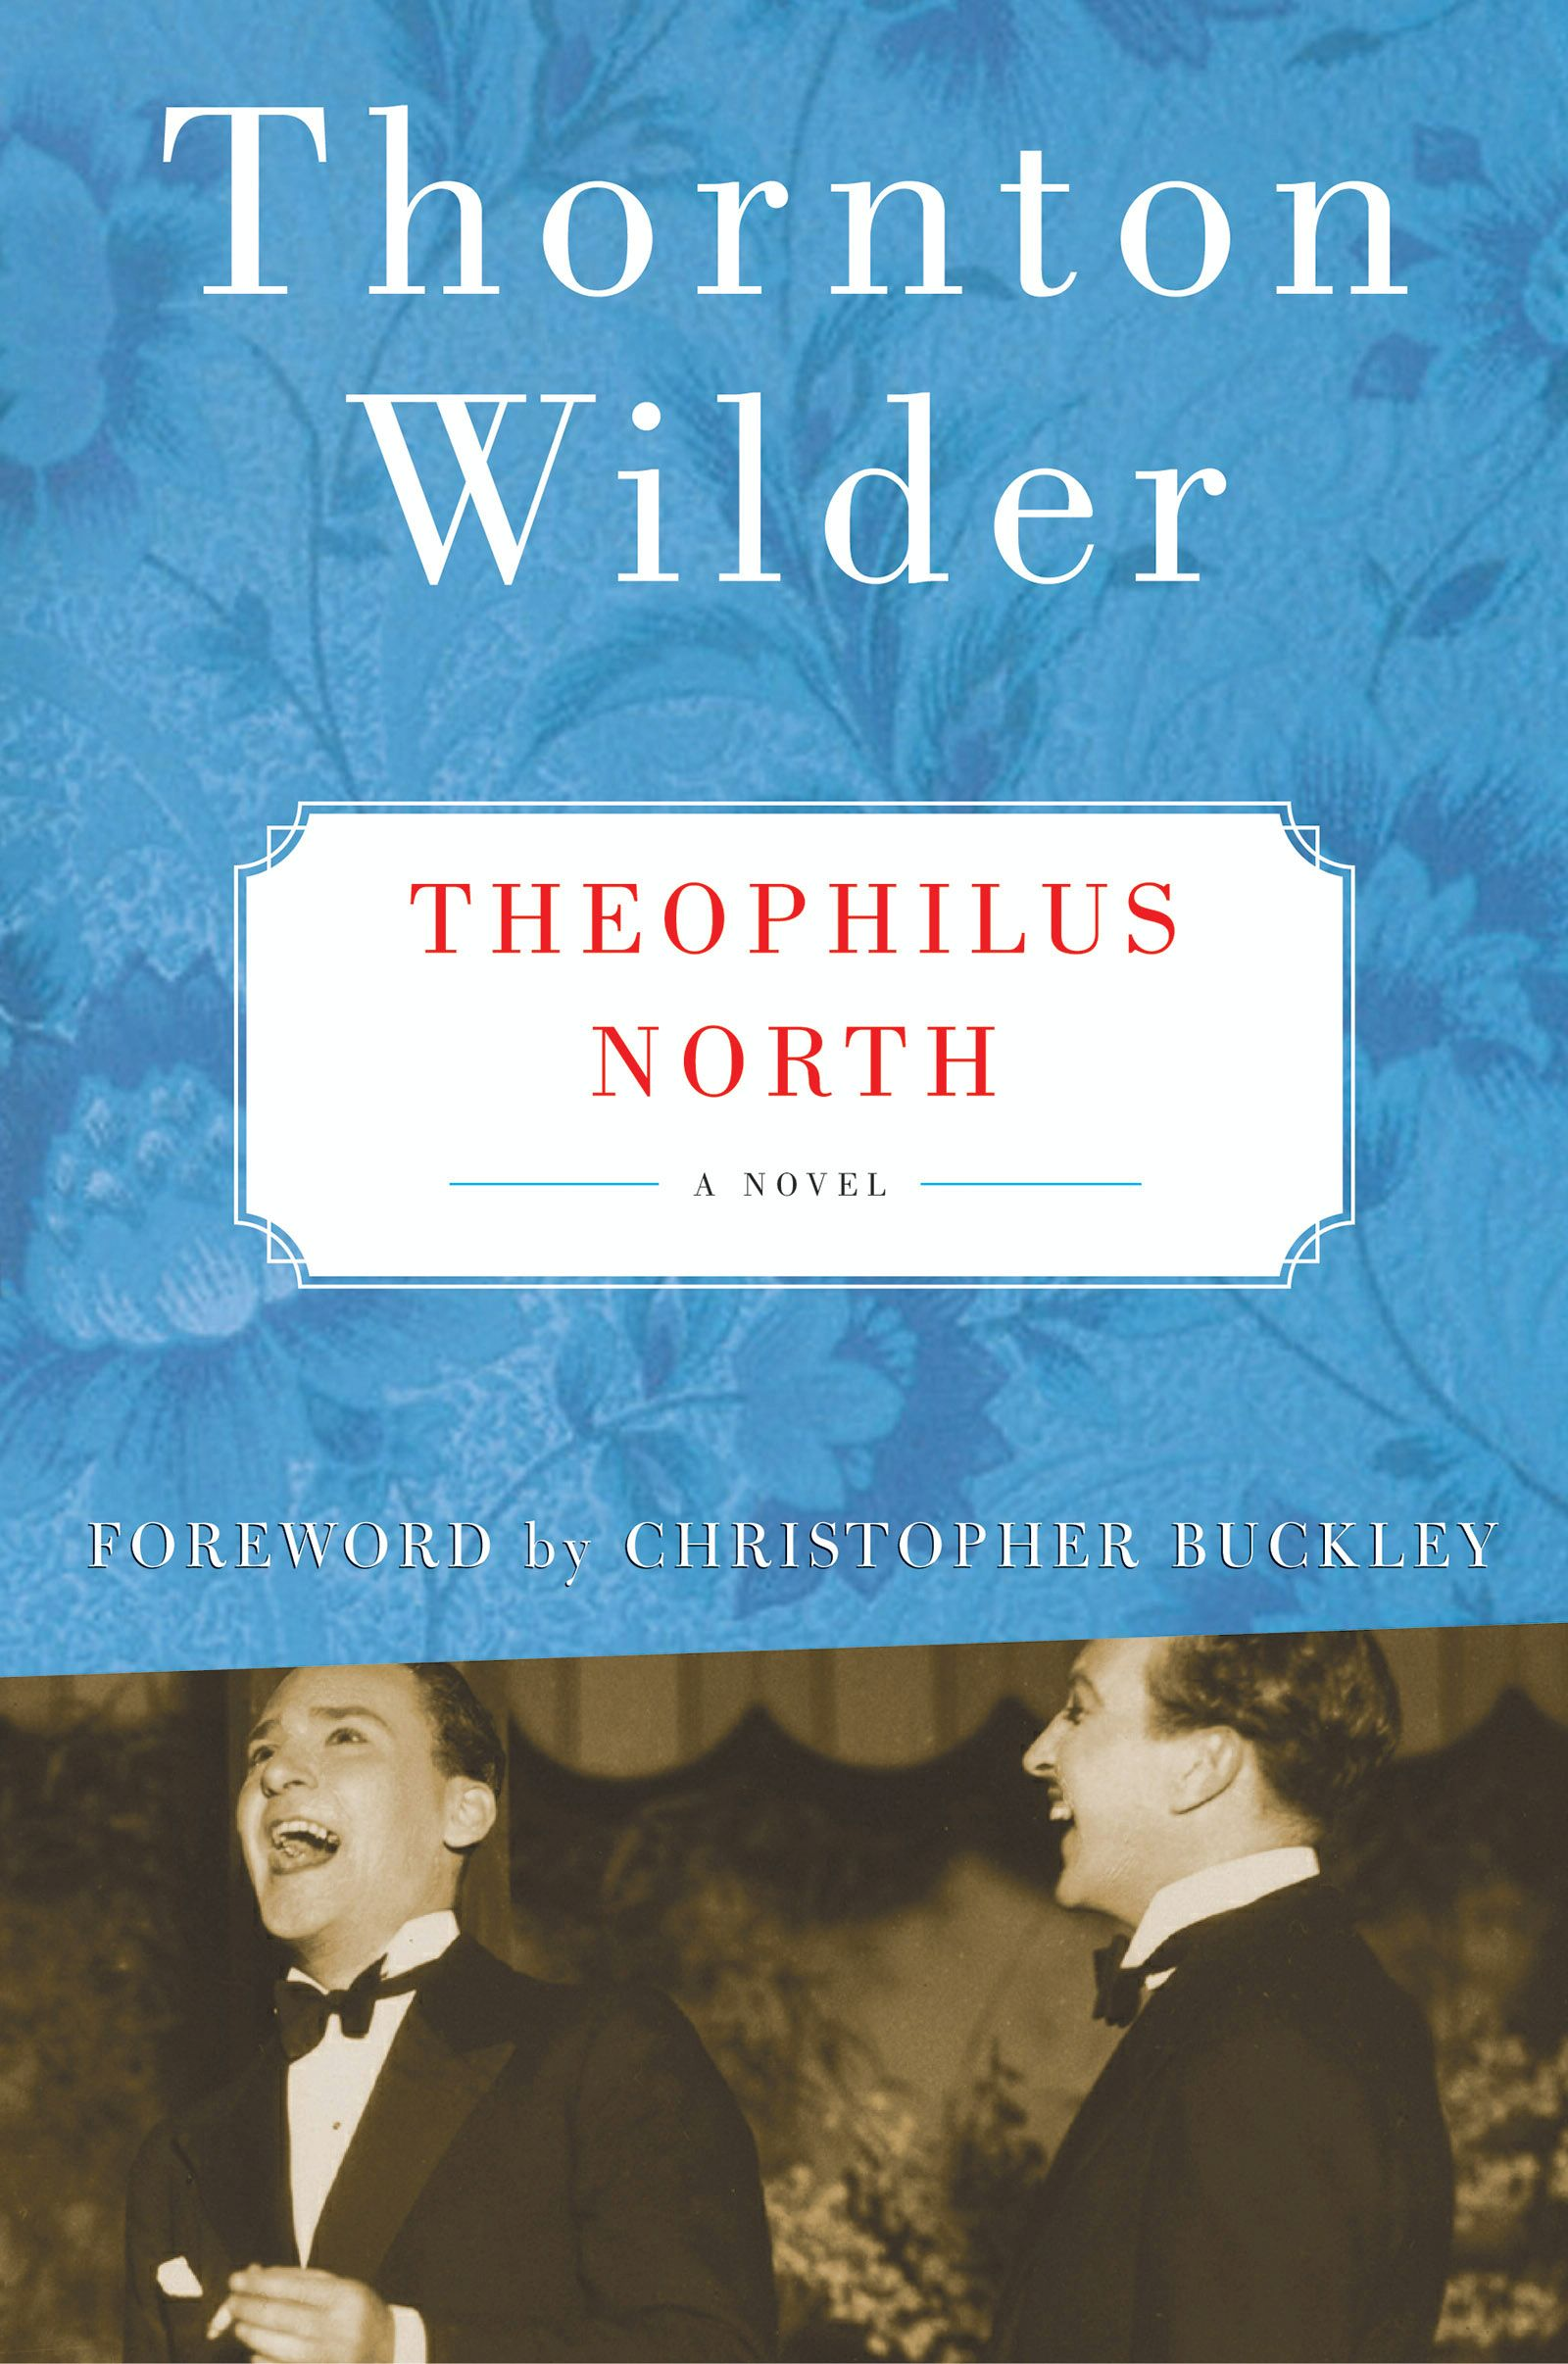 thornton wilders principal methods in the setting of his play